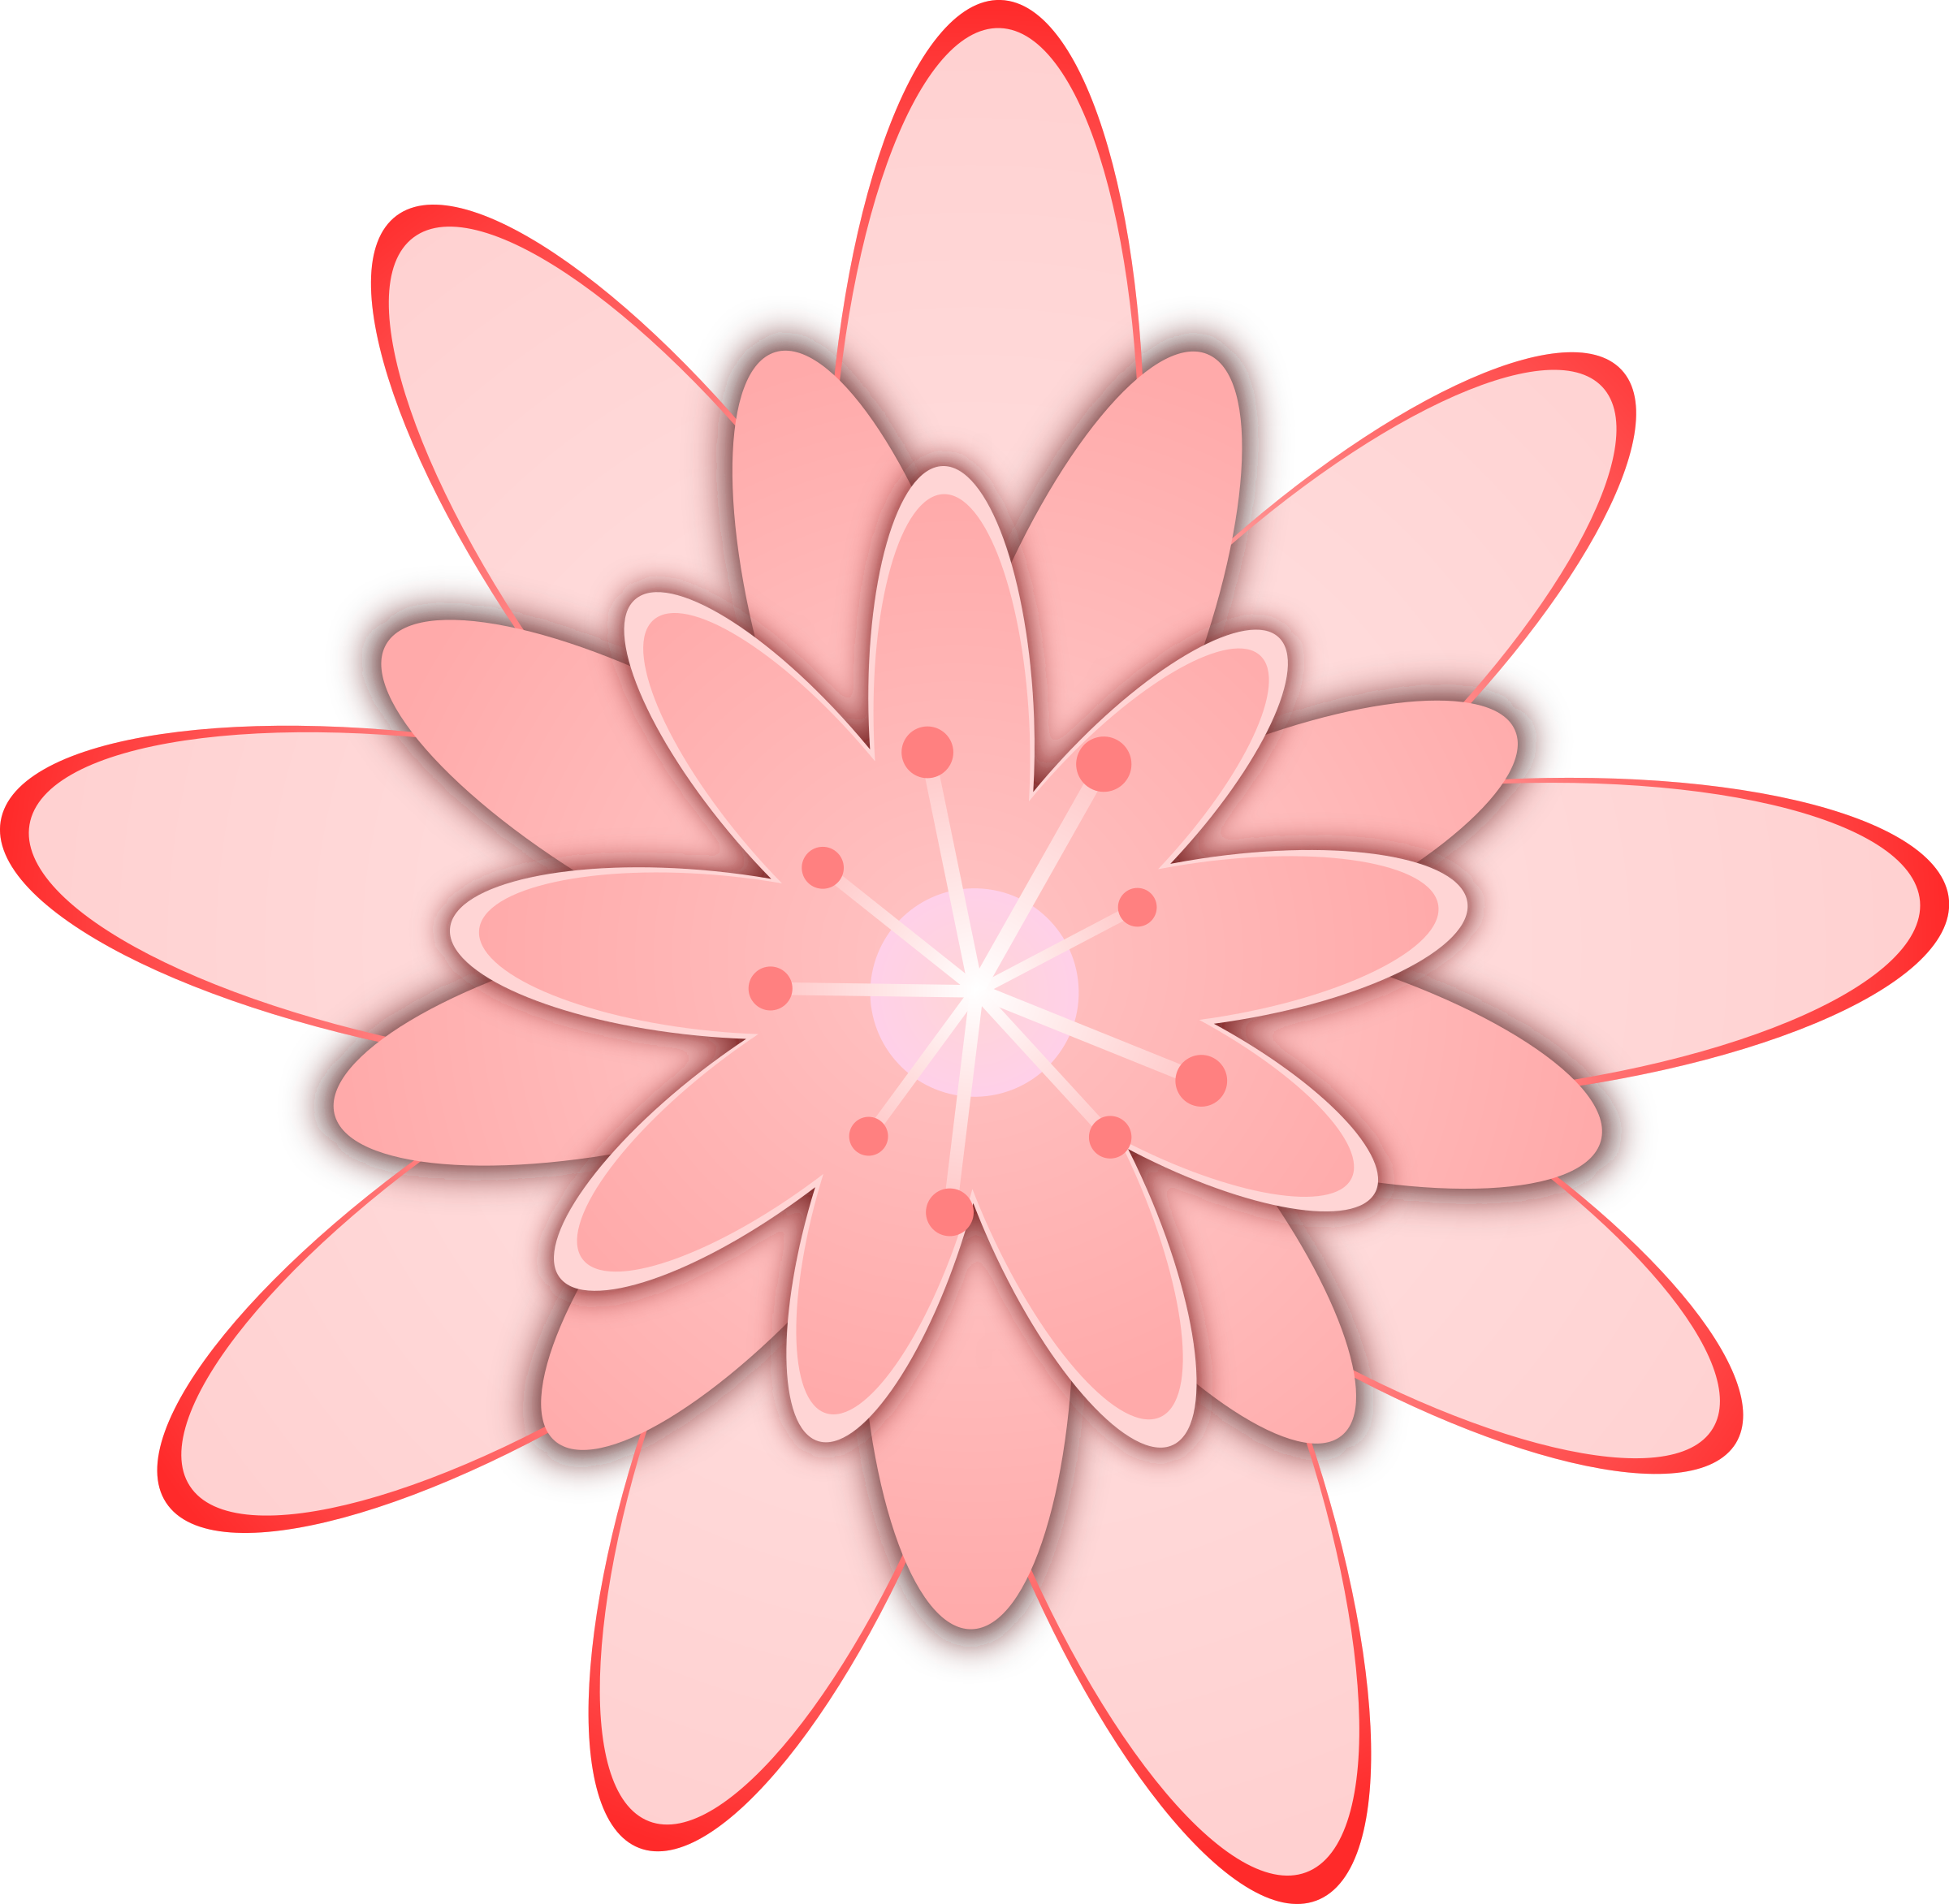 Cute pink flower clipart. Big image png